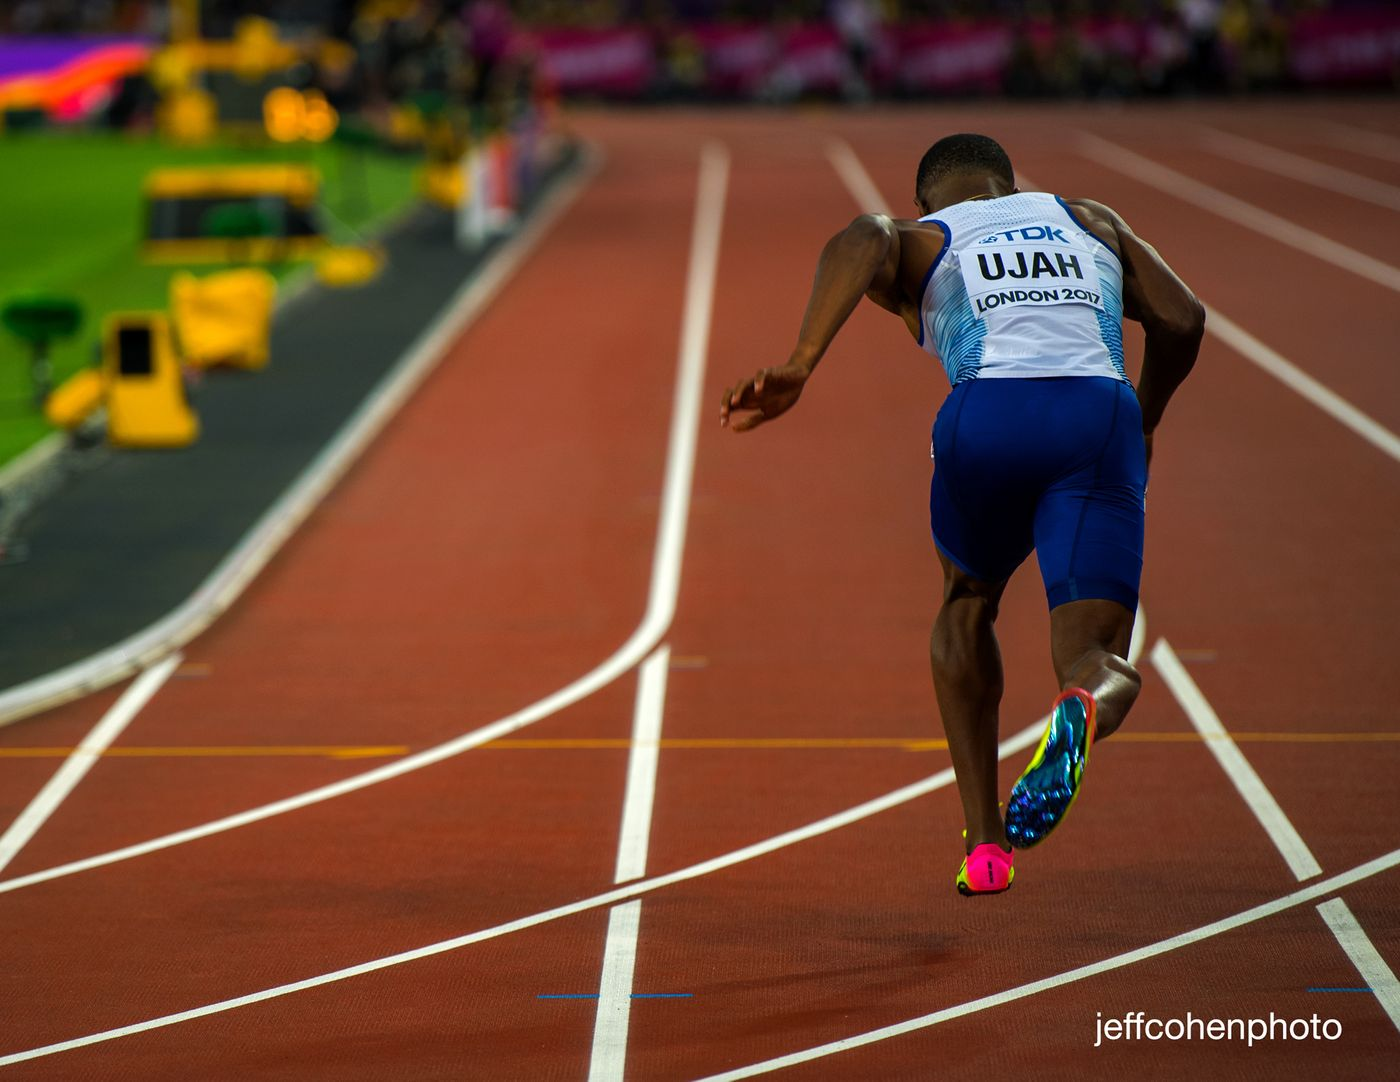 2017-IAAF-WC-London-day-1-ujah-100m-jeff-cohen-photo--3702-web.jpg